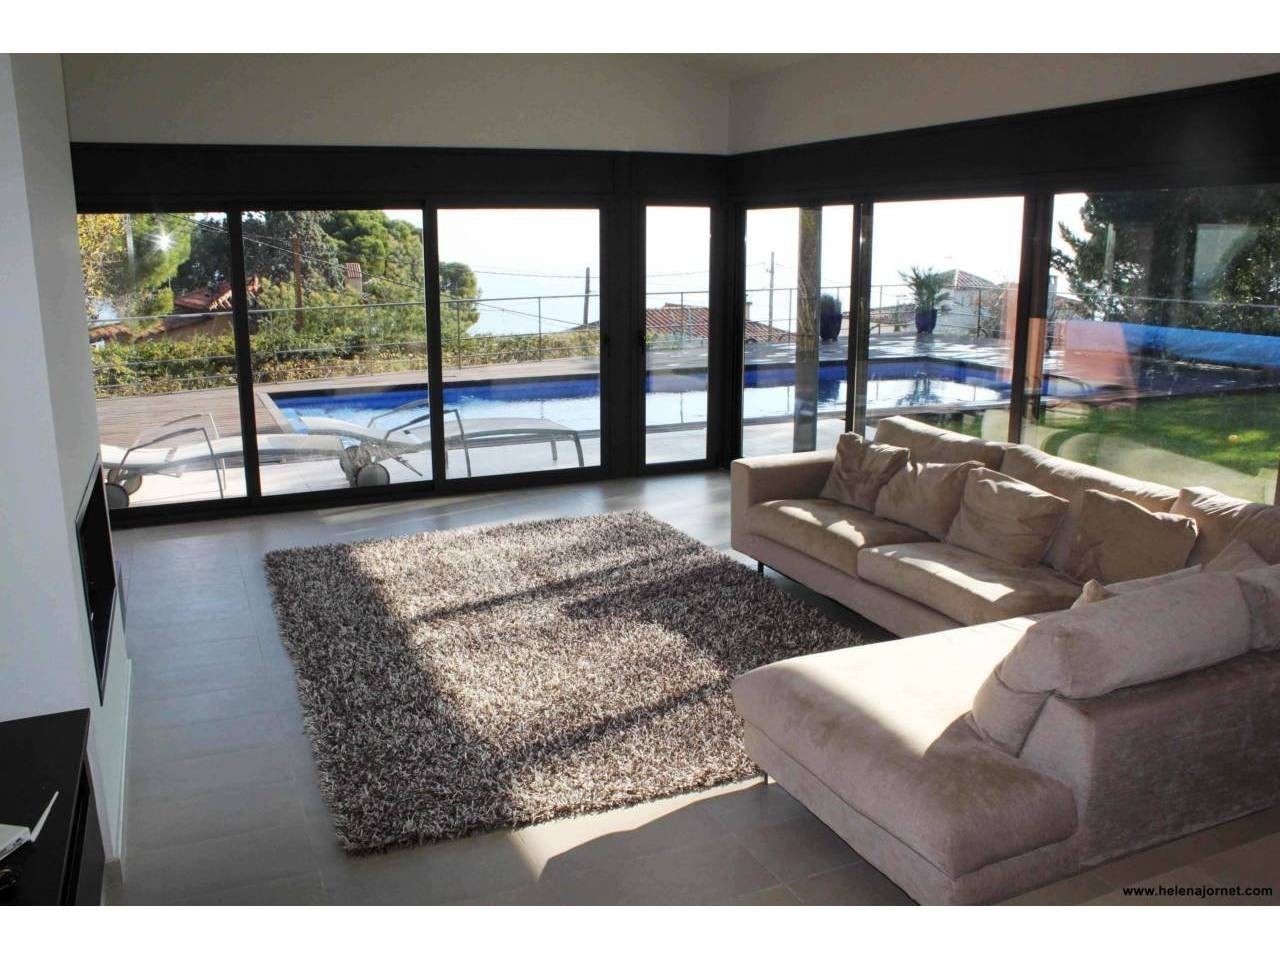 Exclusiva casa en Sant Elm con unas vistas al mar espectaculares - 169